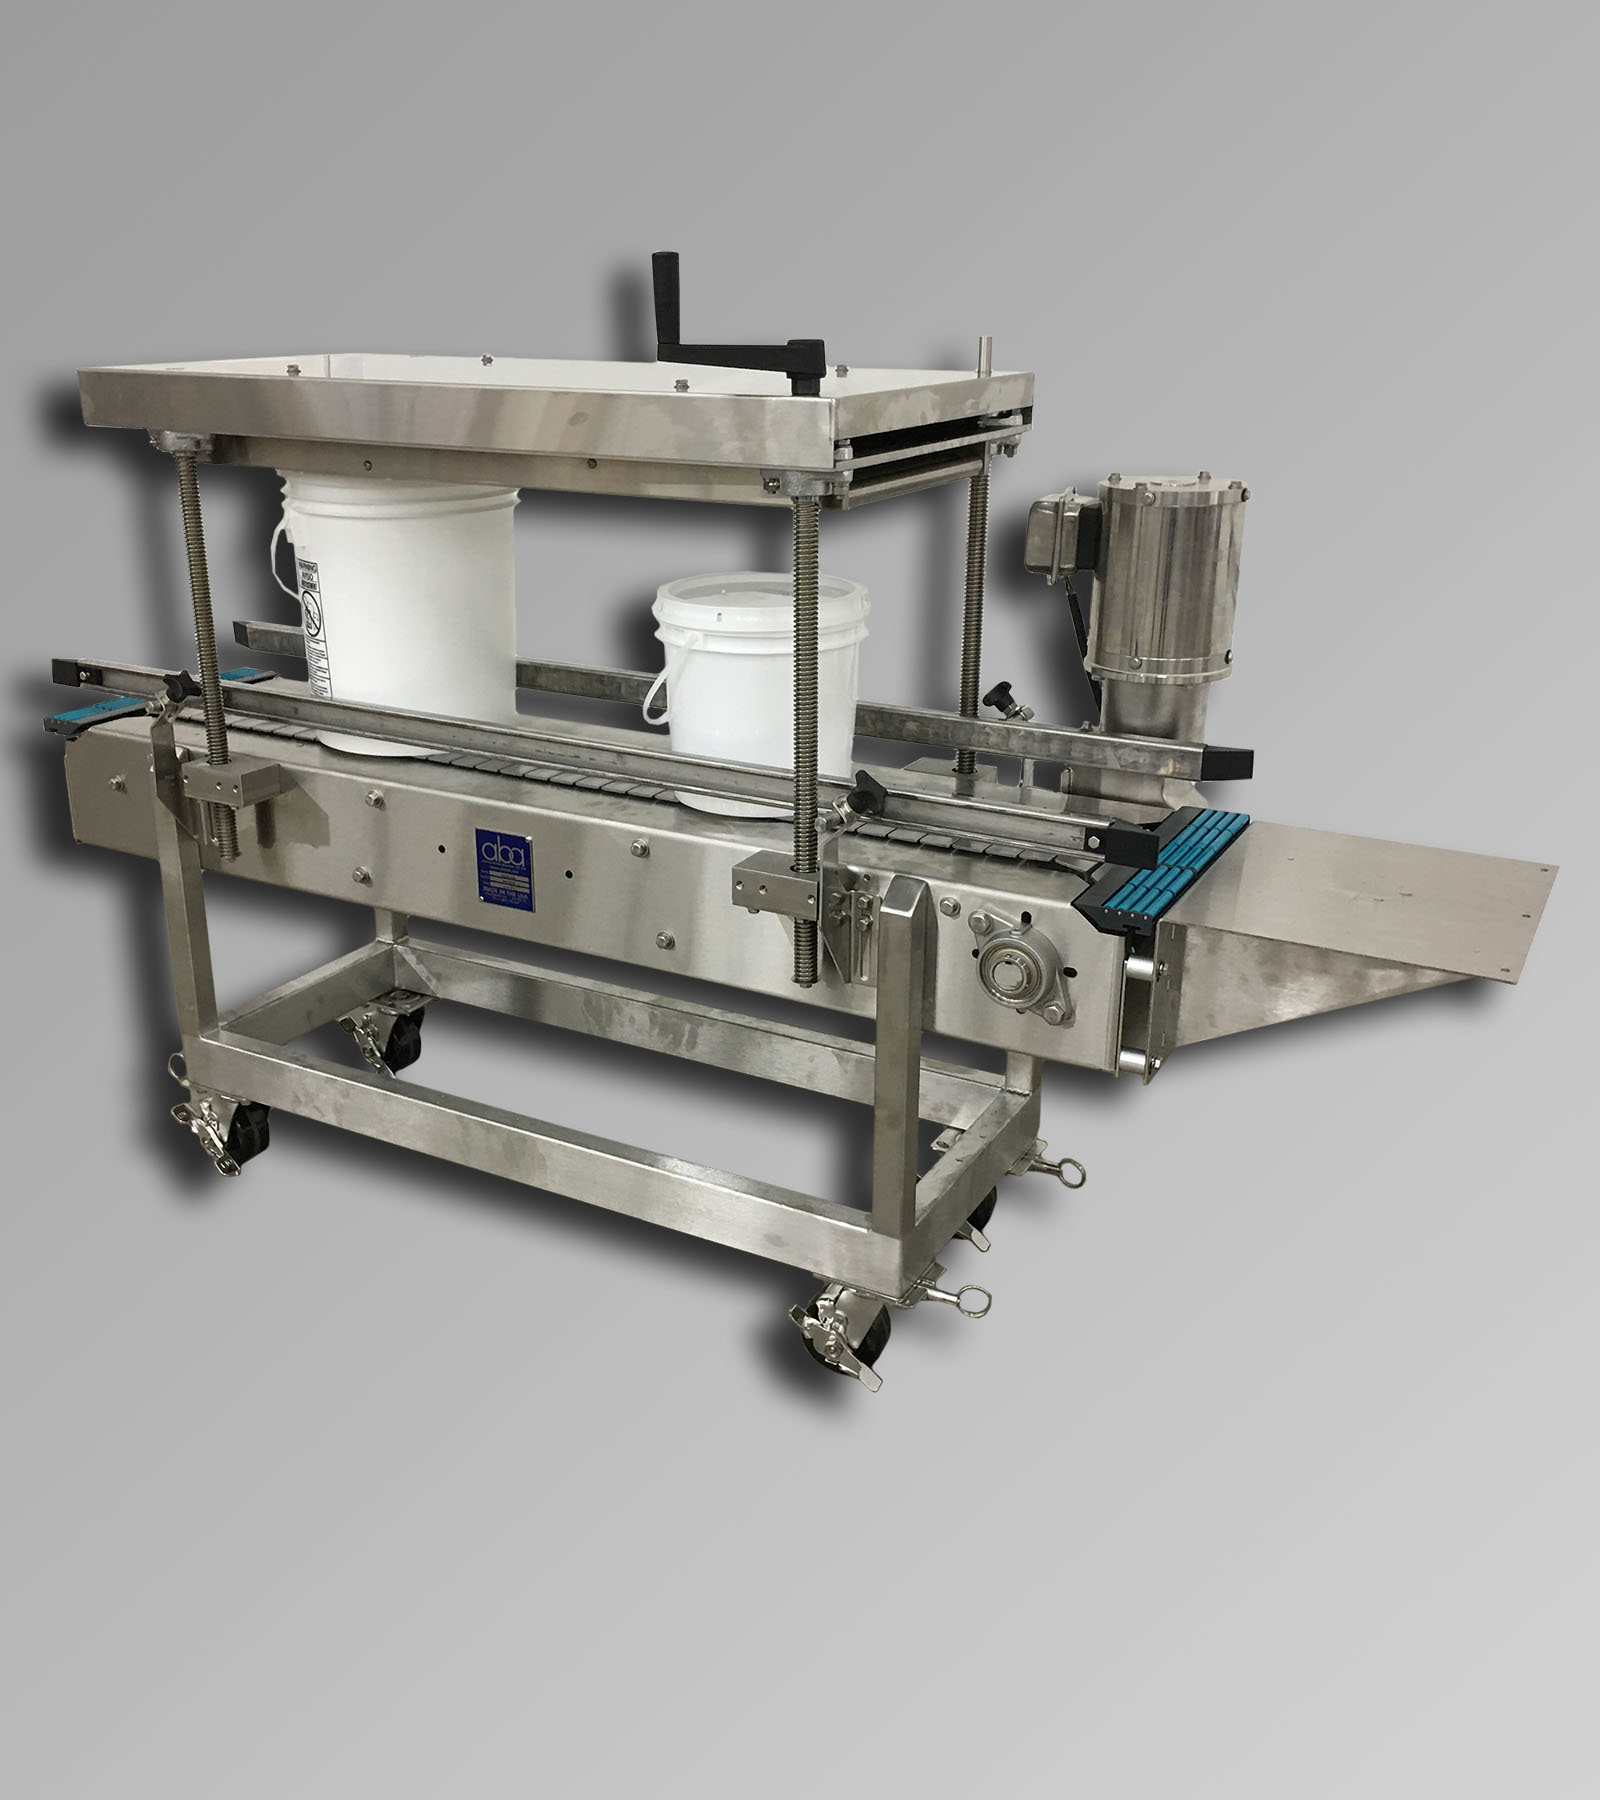 ABA-M438 - Stainless Steel 5 Gallon Roller Lid Press & Conveyor